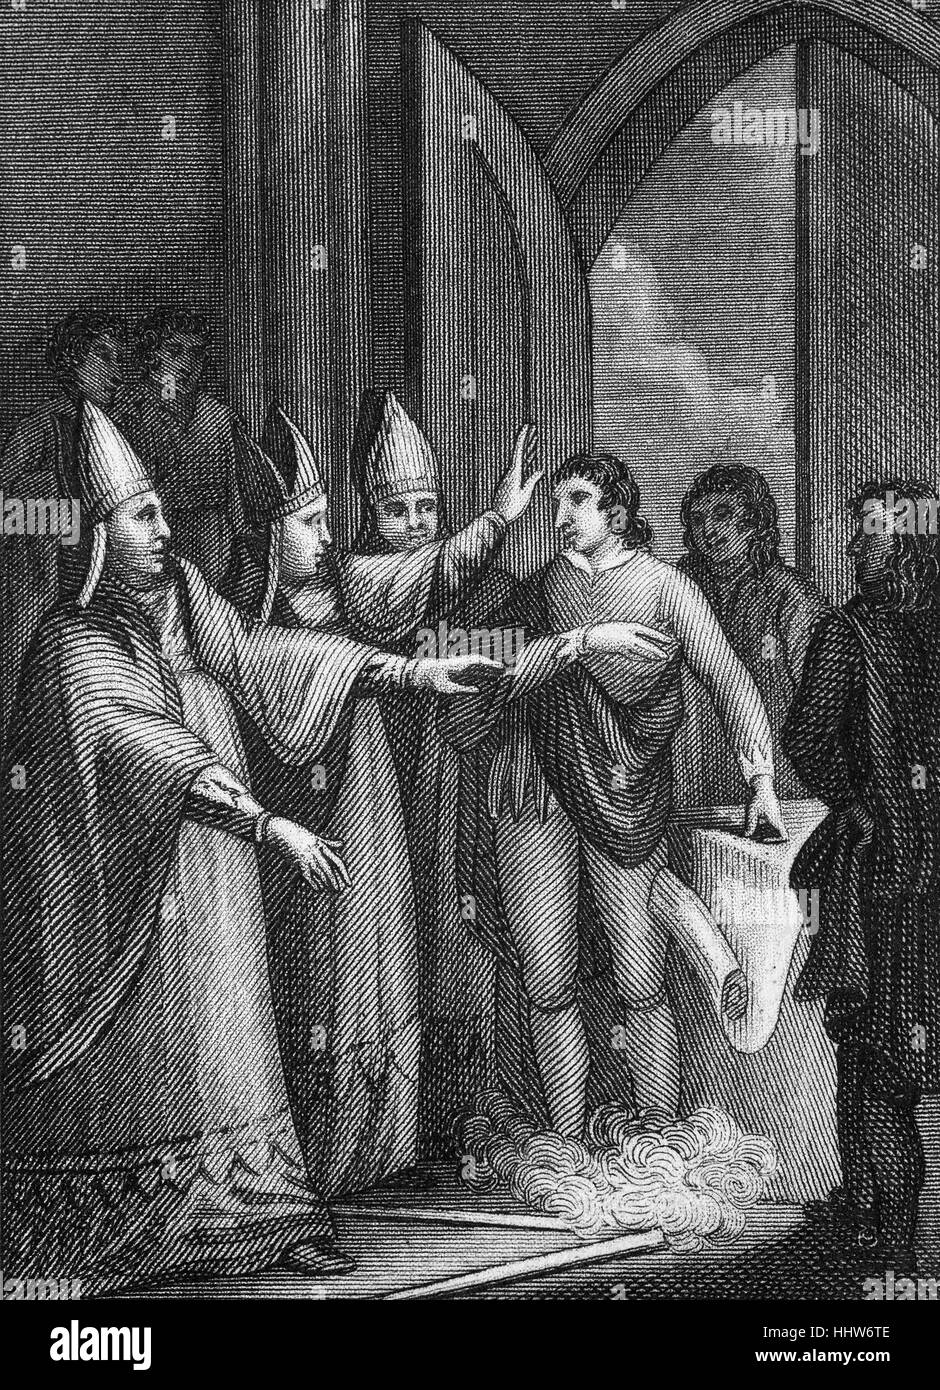 Magna Carta, or 'The Great Charter', was originally issued by King John of England as a solution to the political - Stock Image